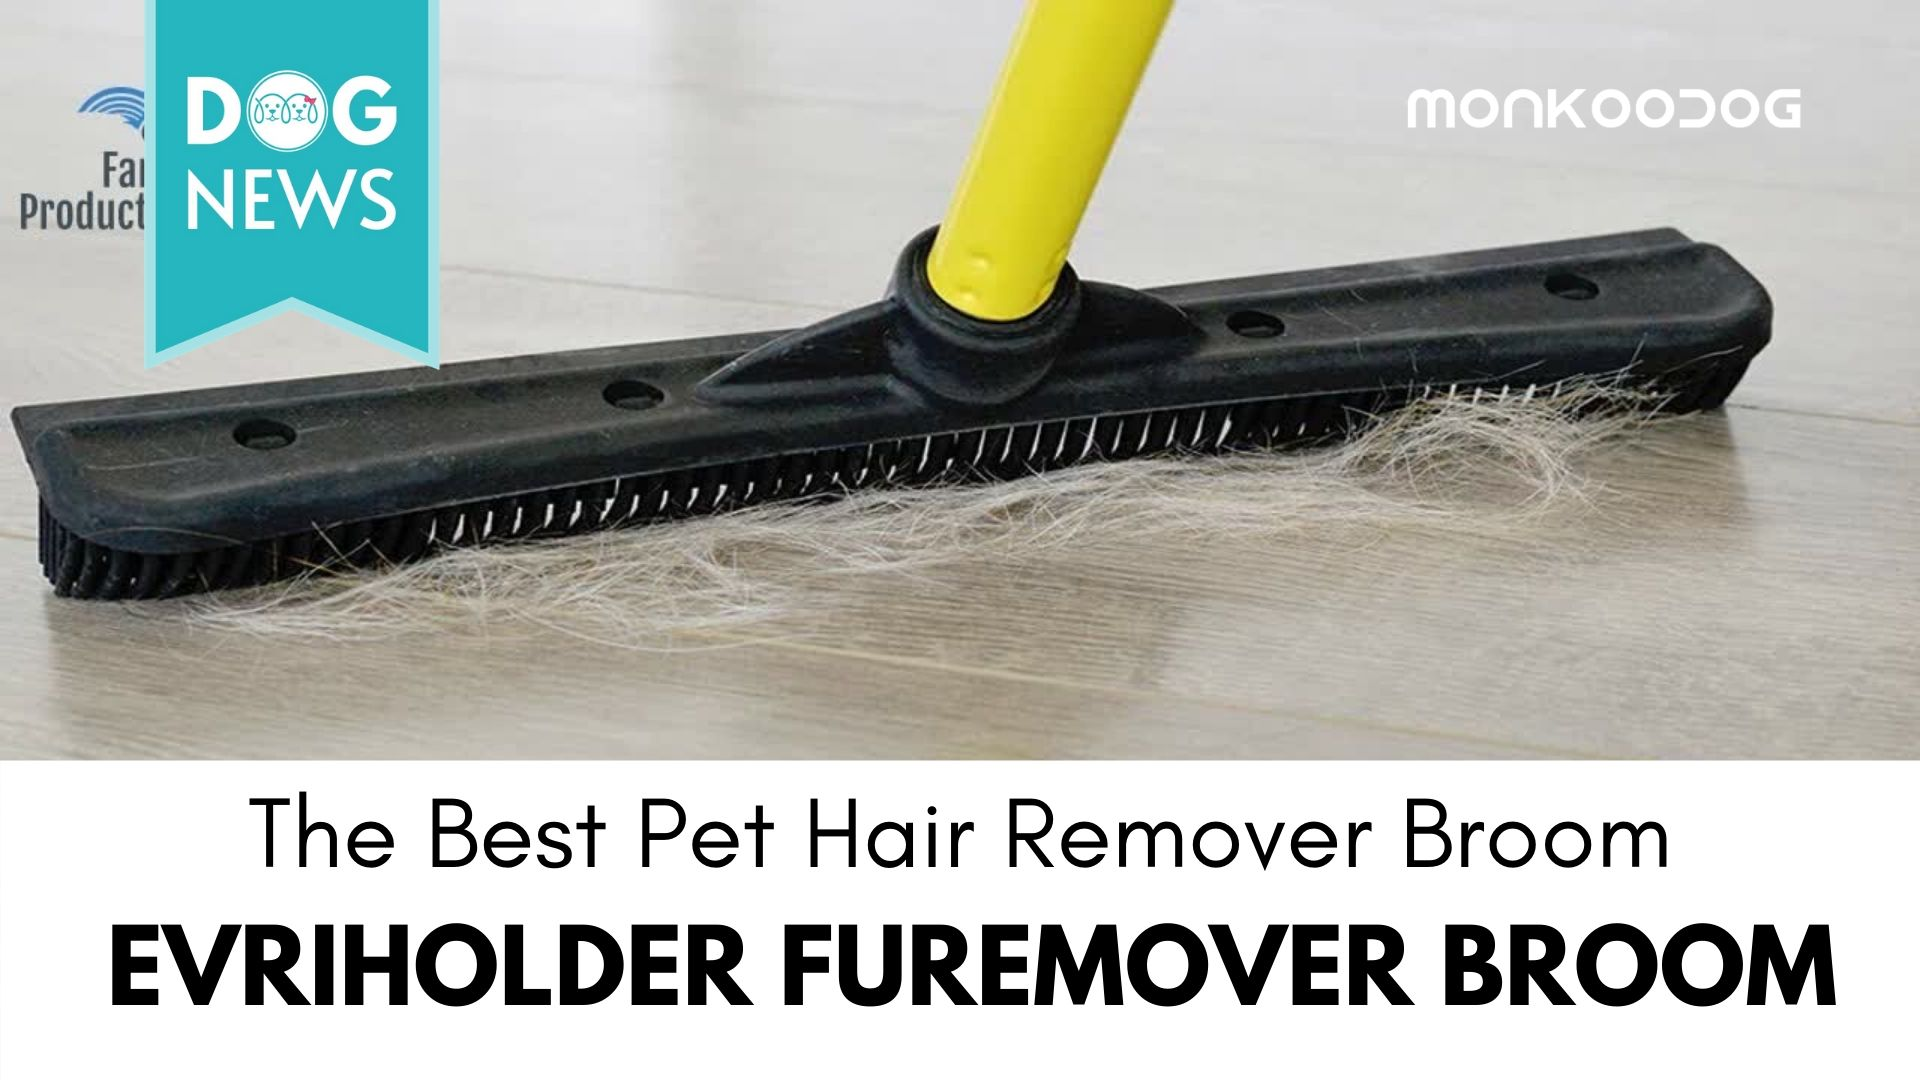 The new generation multipurpose broom for pet owners is taking the internet by storm for all the right reasons